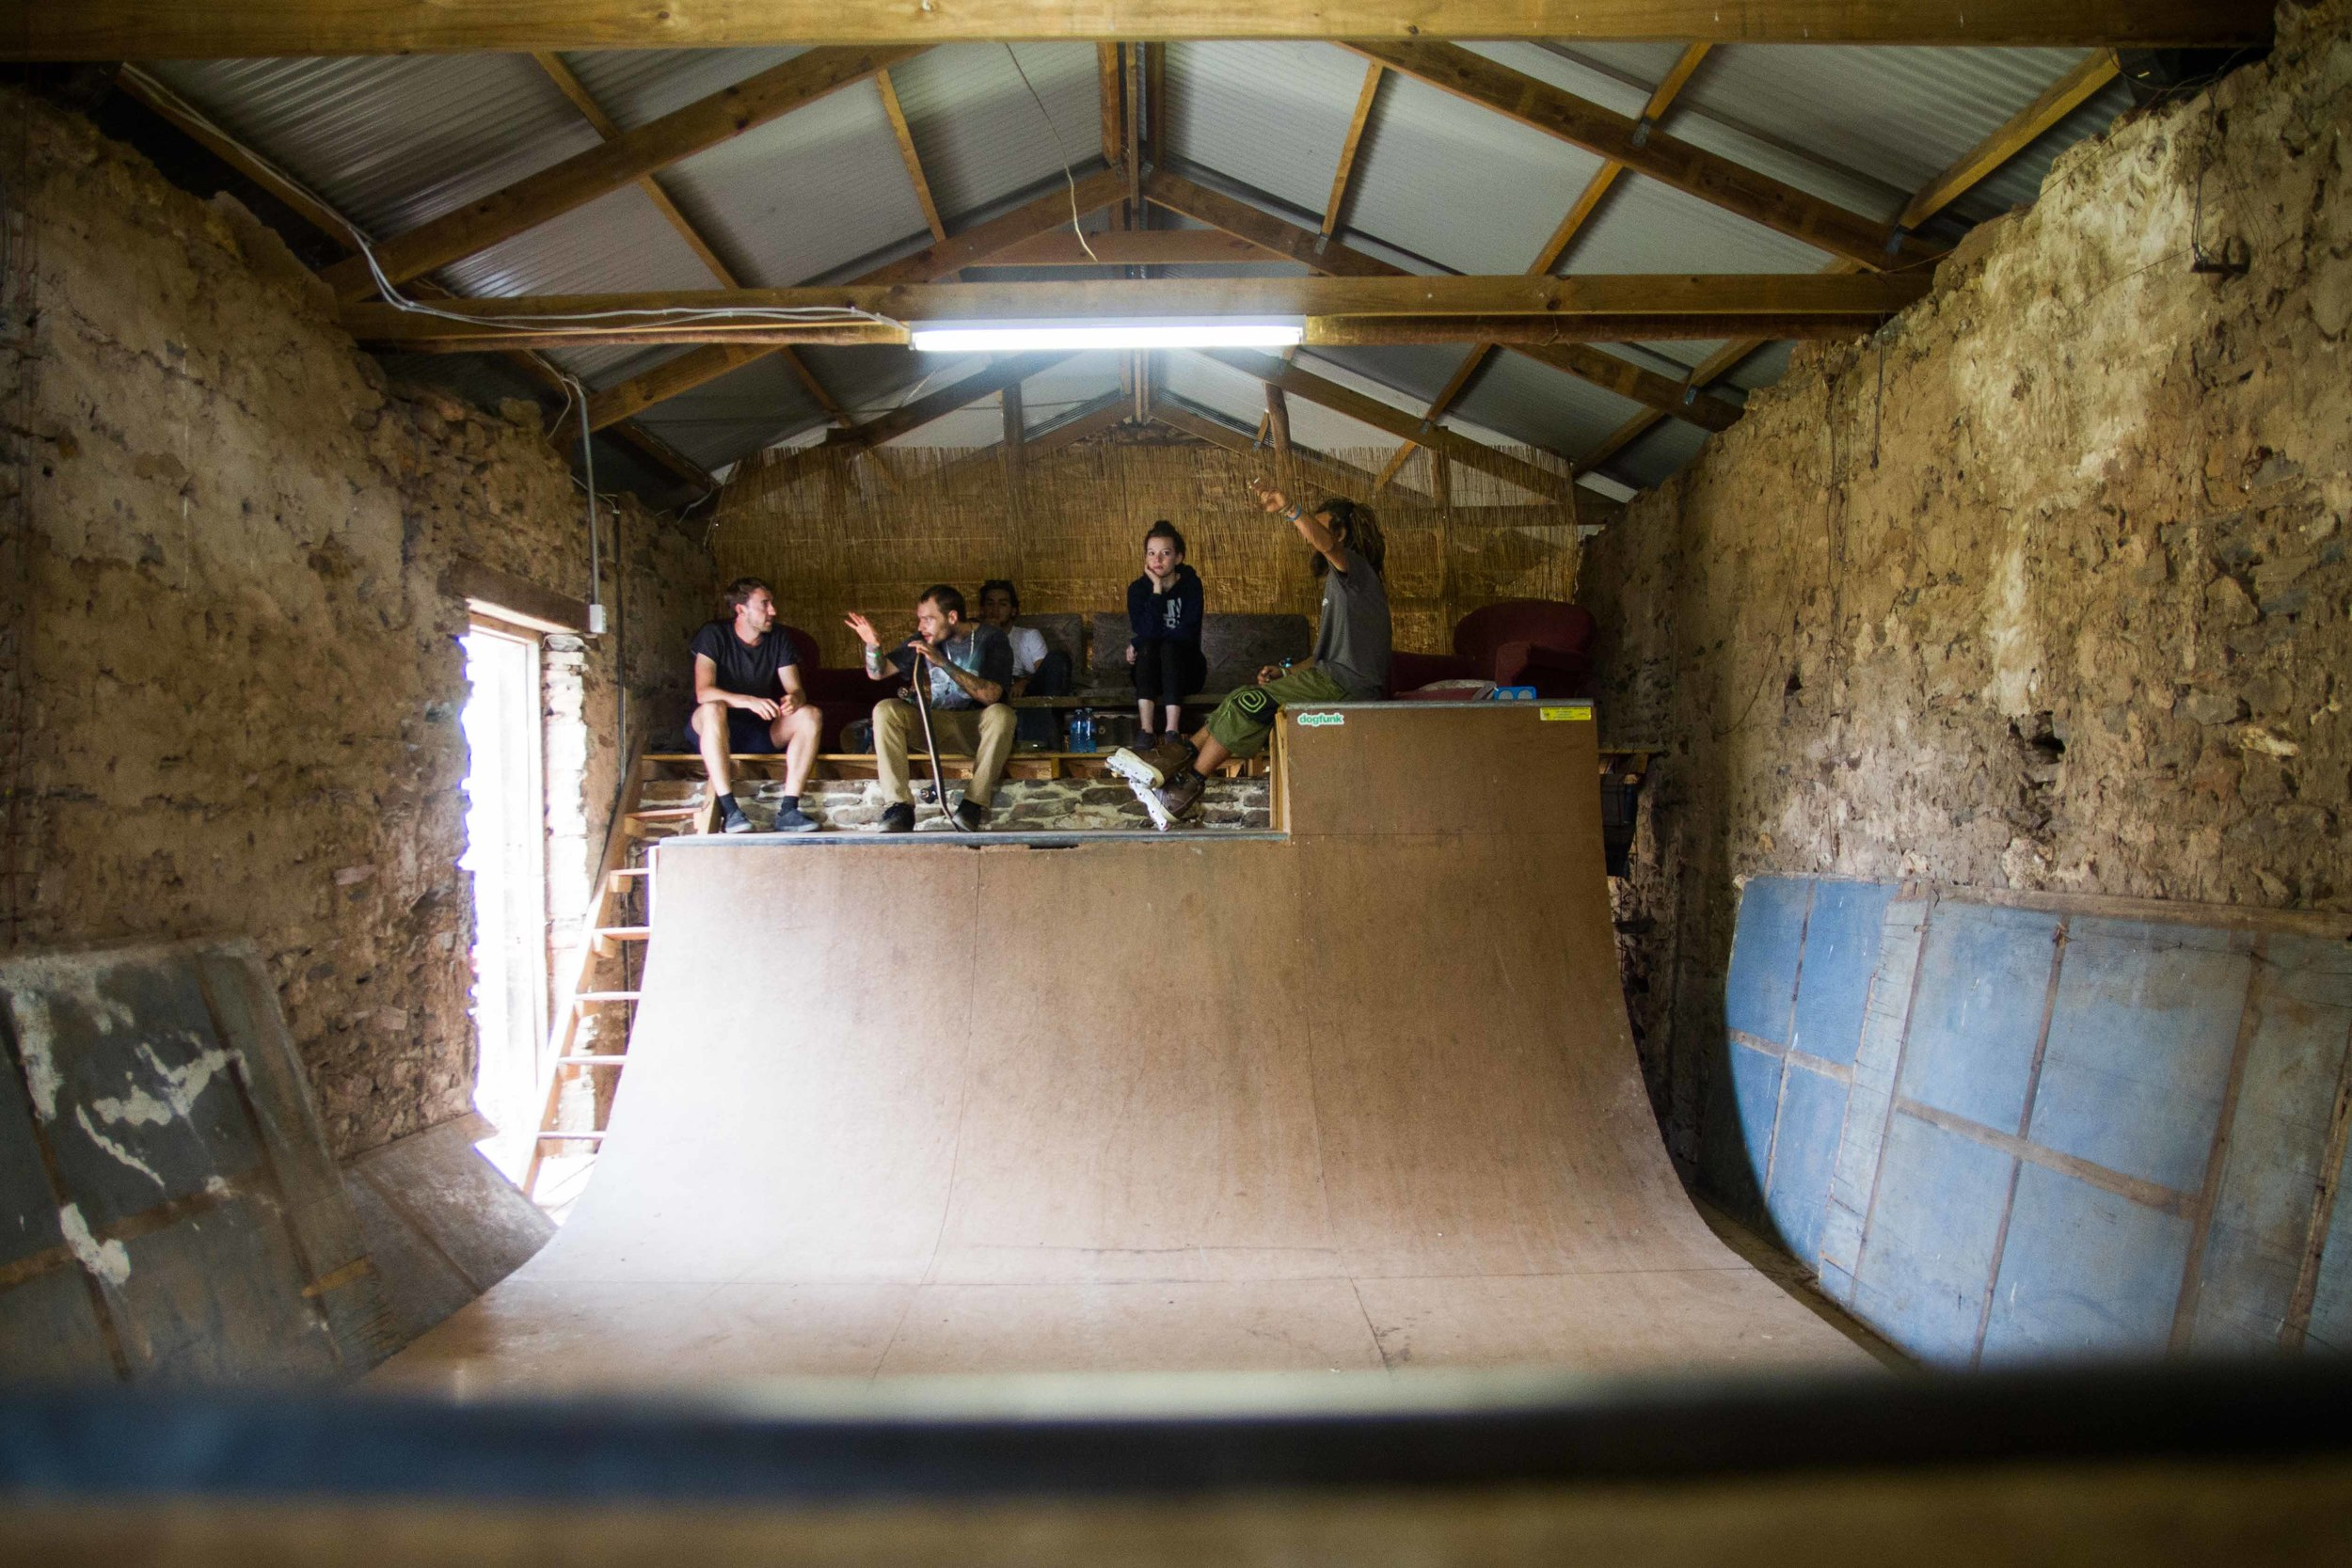 How many festivals have you been to where you can ride a half-pipe in-between acts?